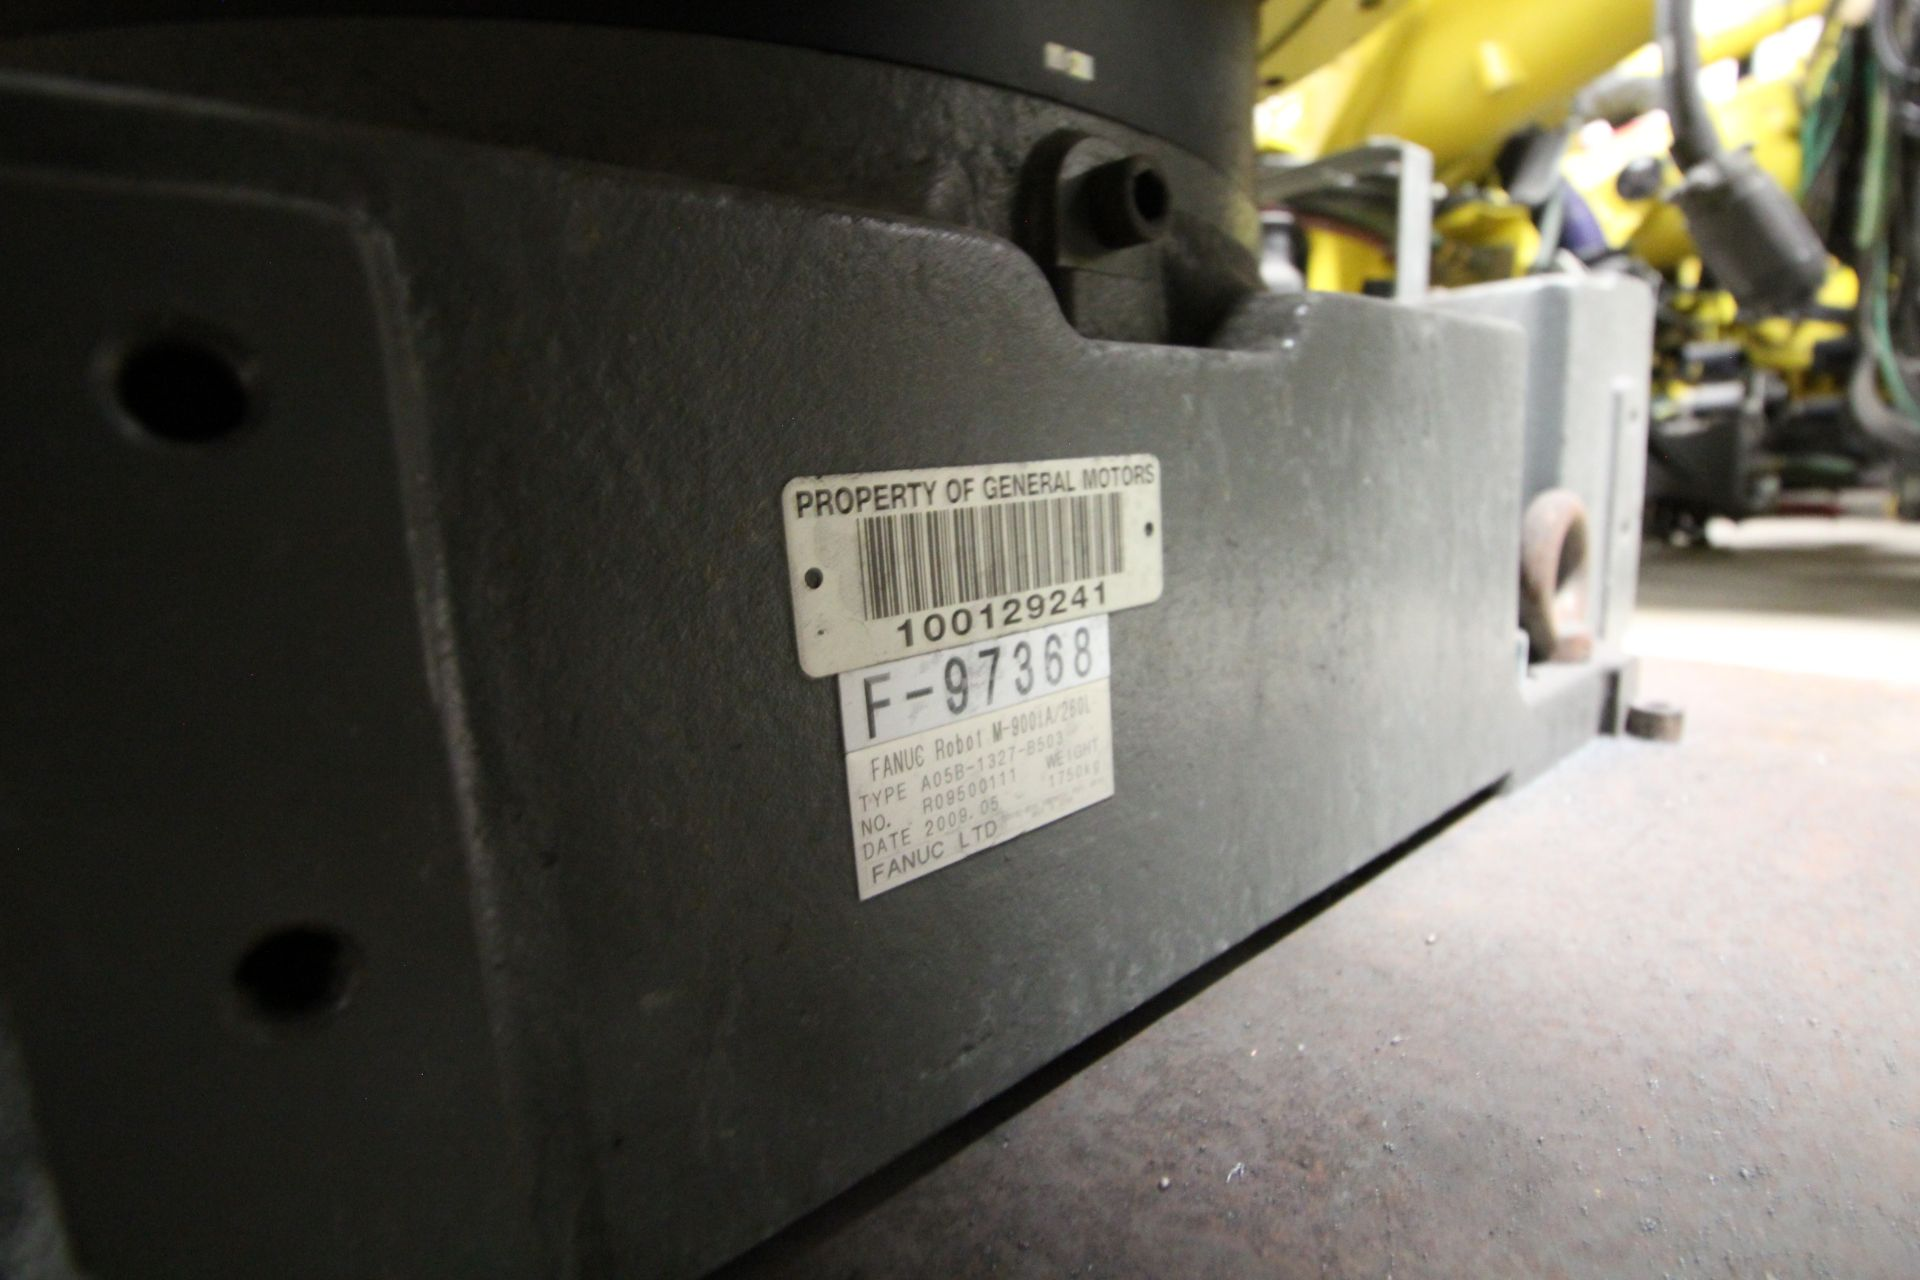 FANUC ROBOT M900iA/260L WITH R-30iA CONTROL, CABLES & TEACH PENDANT, SN 97368, YEAR 2009 - Image 9 of 9